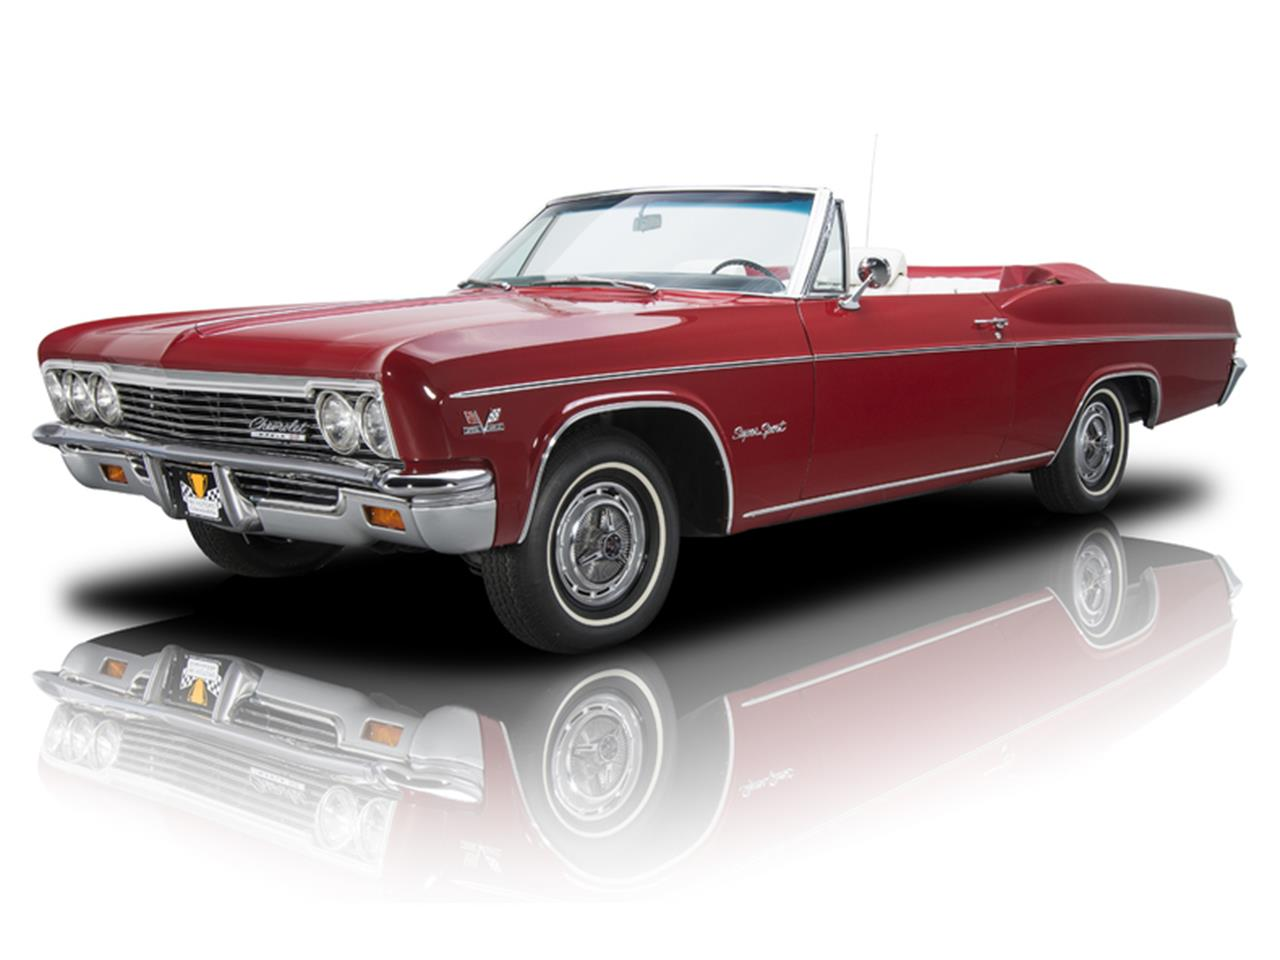 Large Picture of '66 Chevrolet Impala SS - $59,900.00 - L8OP